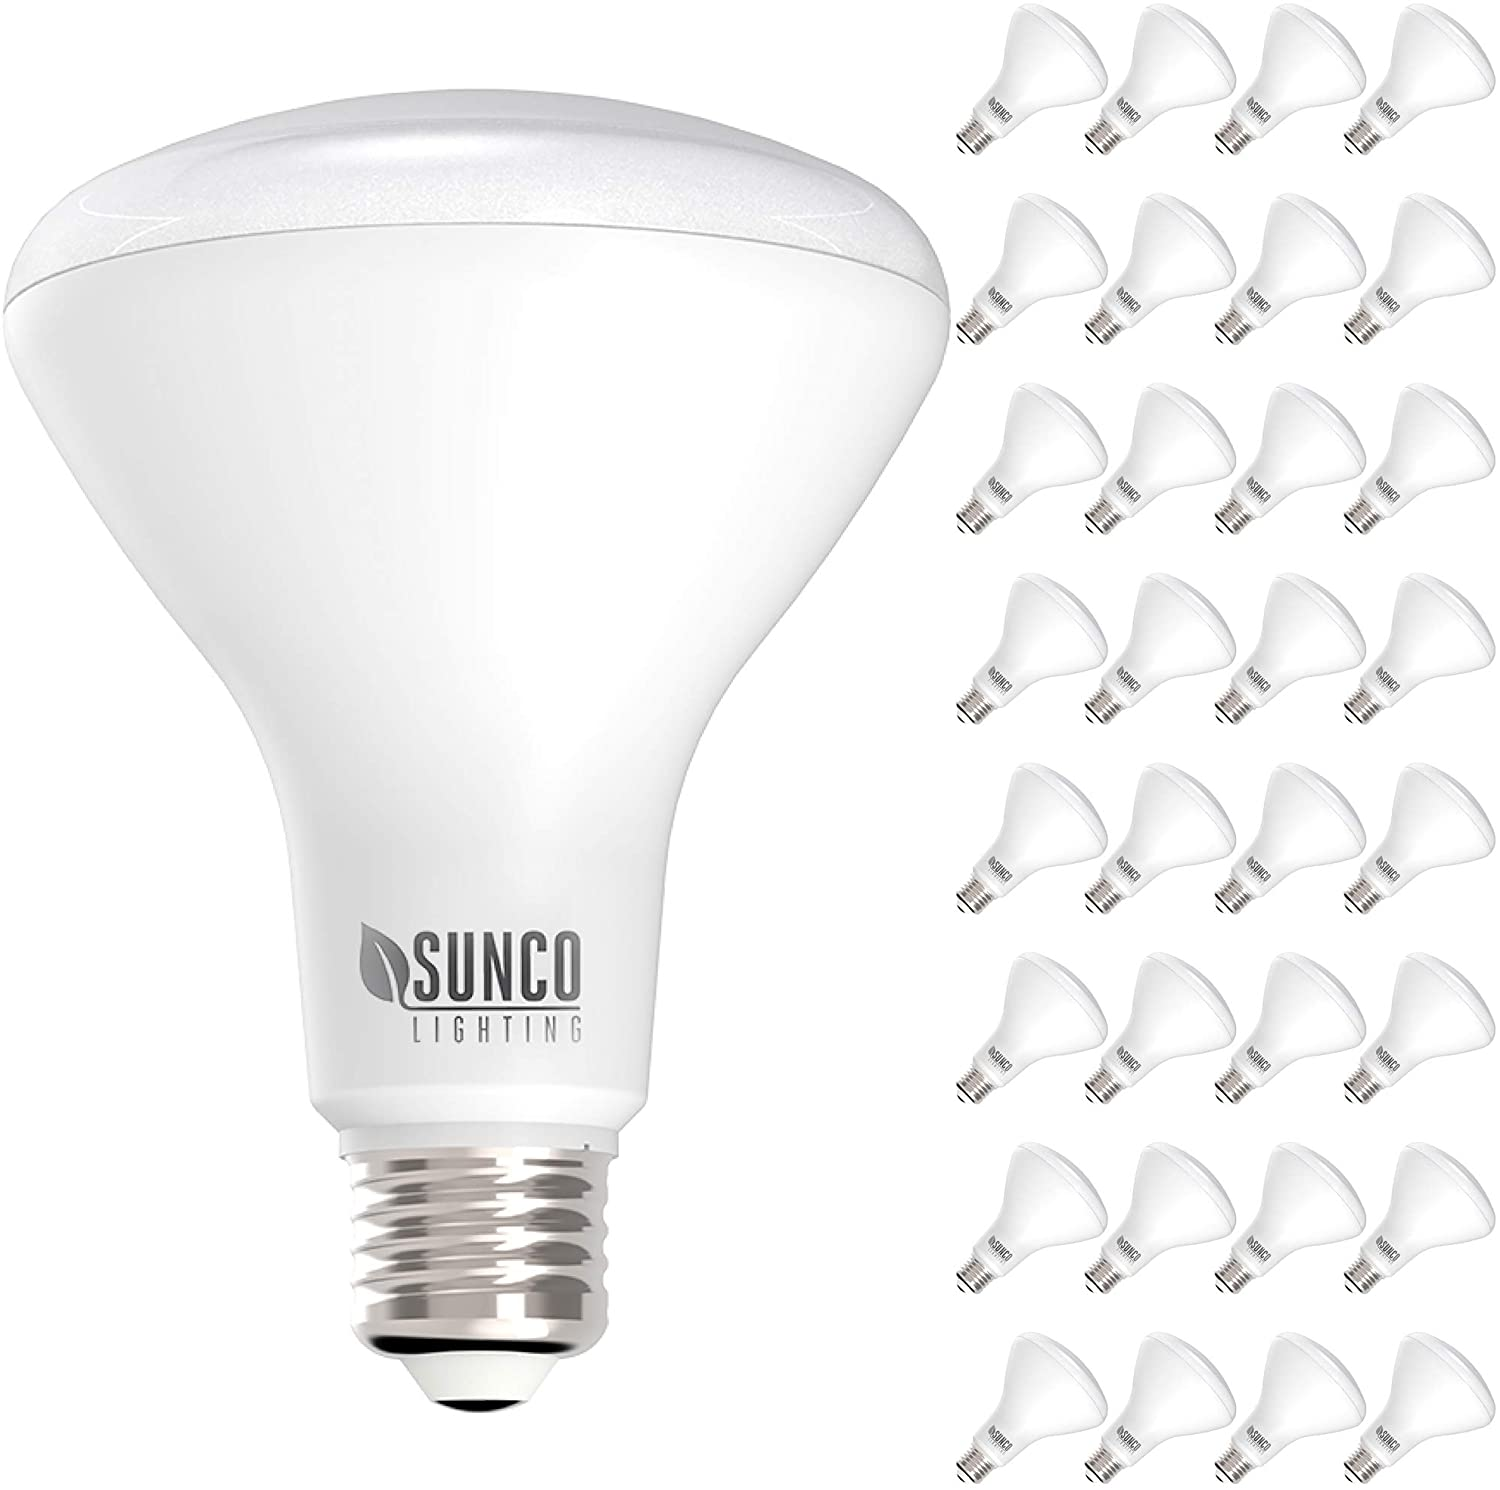 Sunco Lighting 32 Pack BR30 LED Bulb Max 76% OFF Daylight 85 11W=65W 5000K Indianapolis Mall